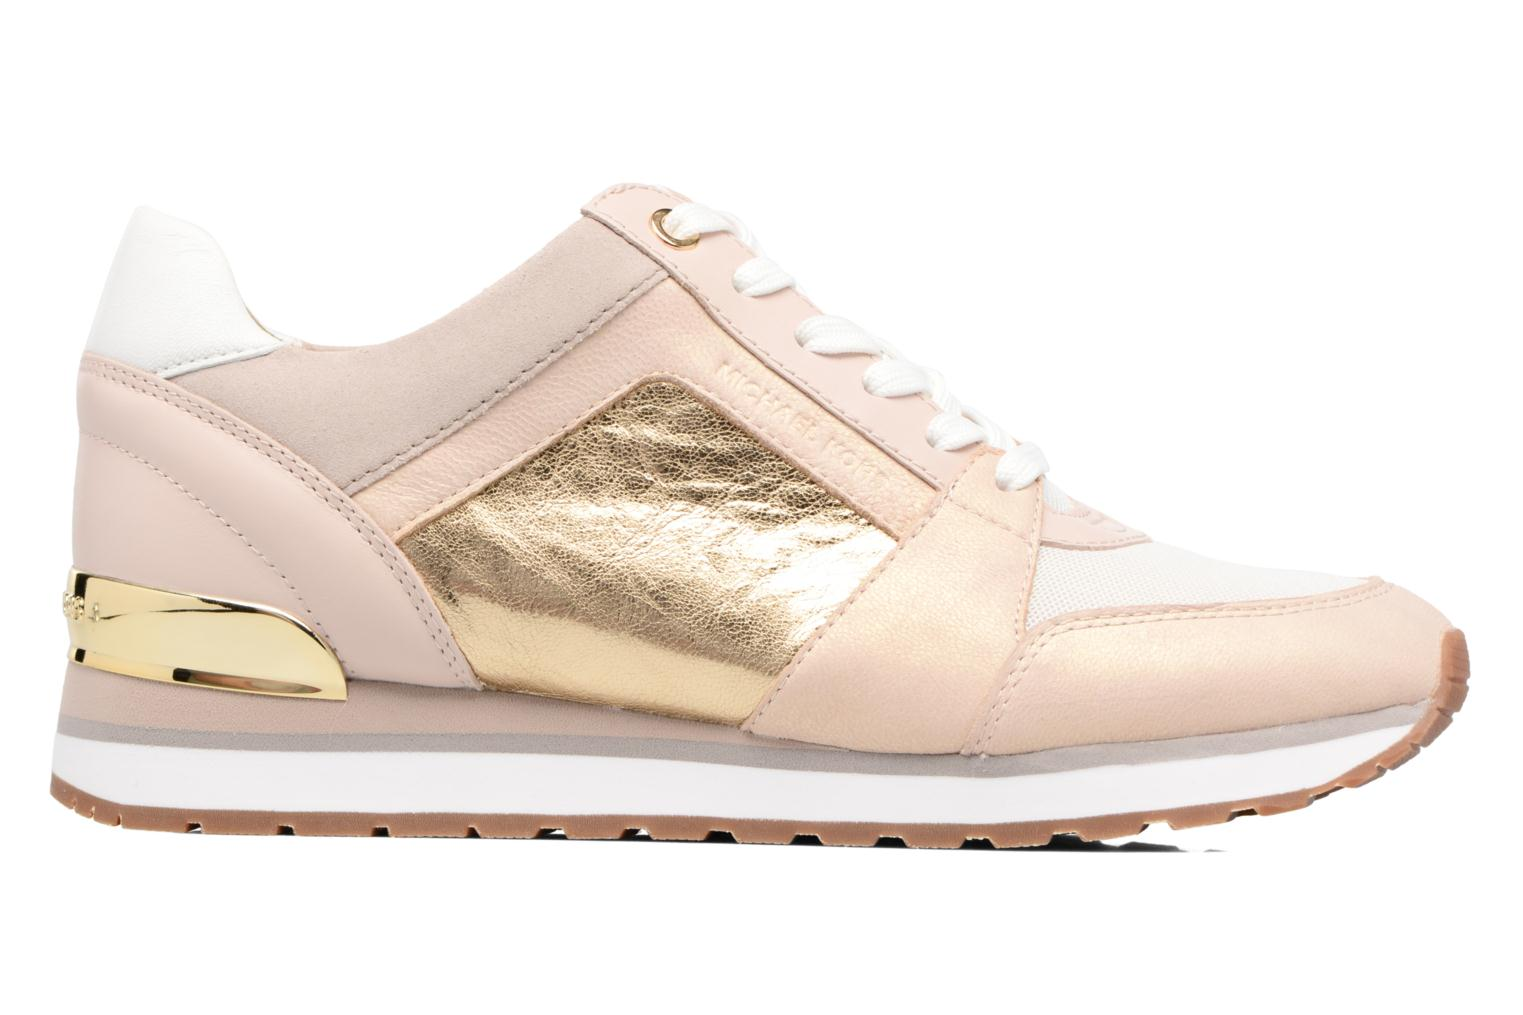 Billie Trainer St Pnk/P Gld